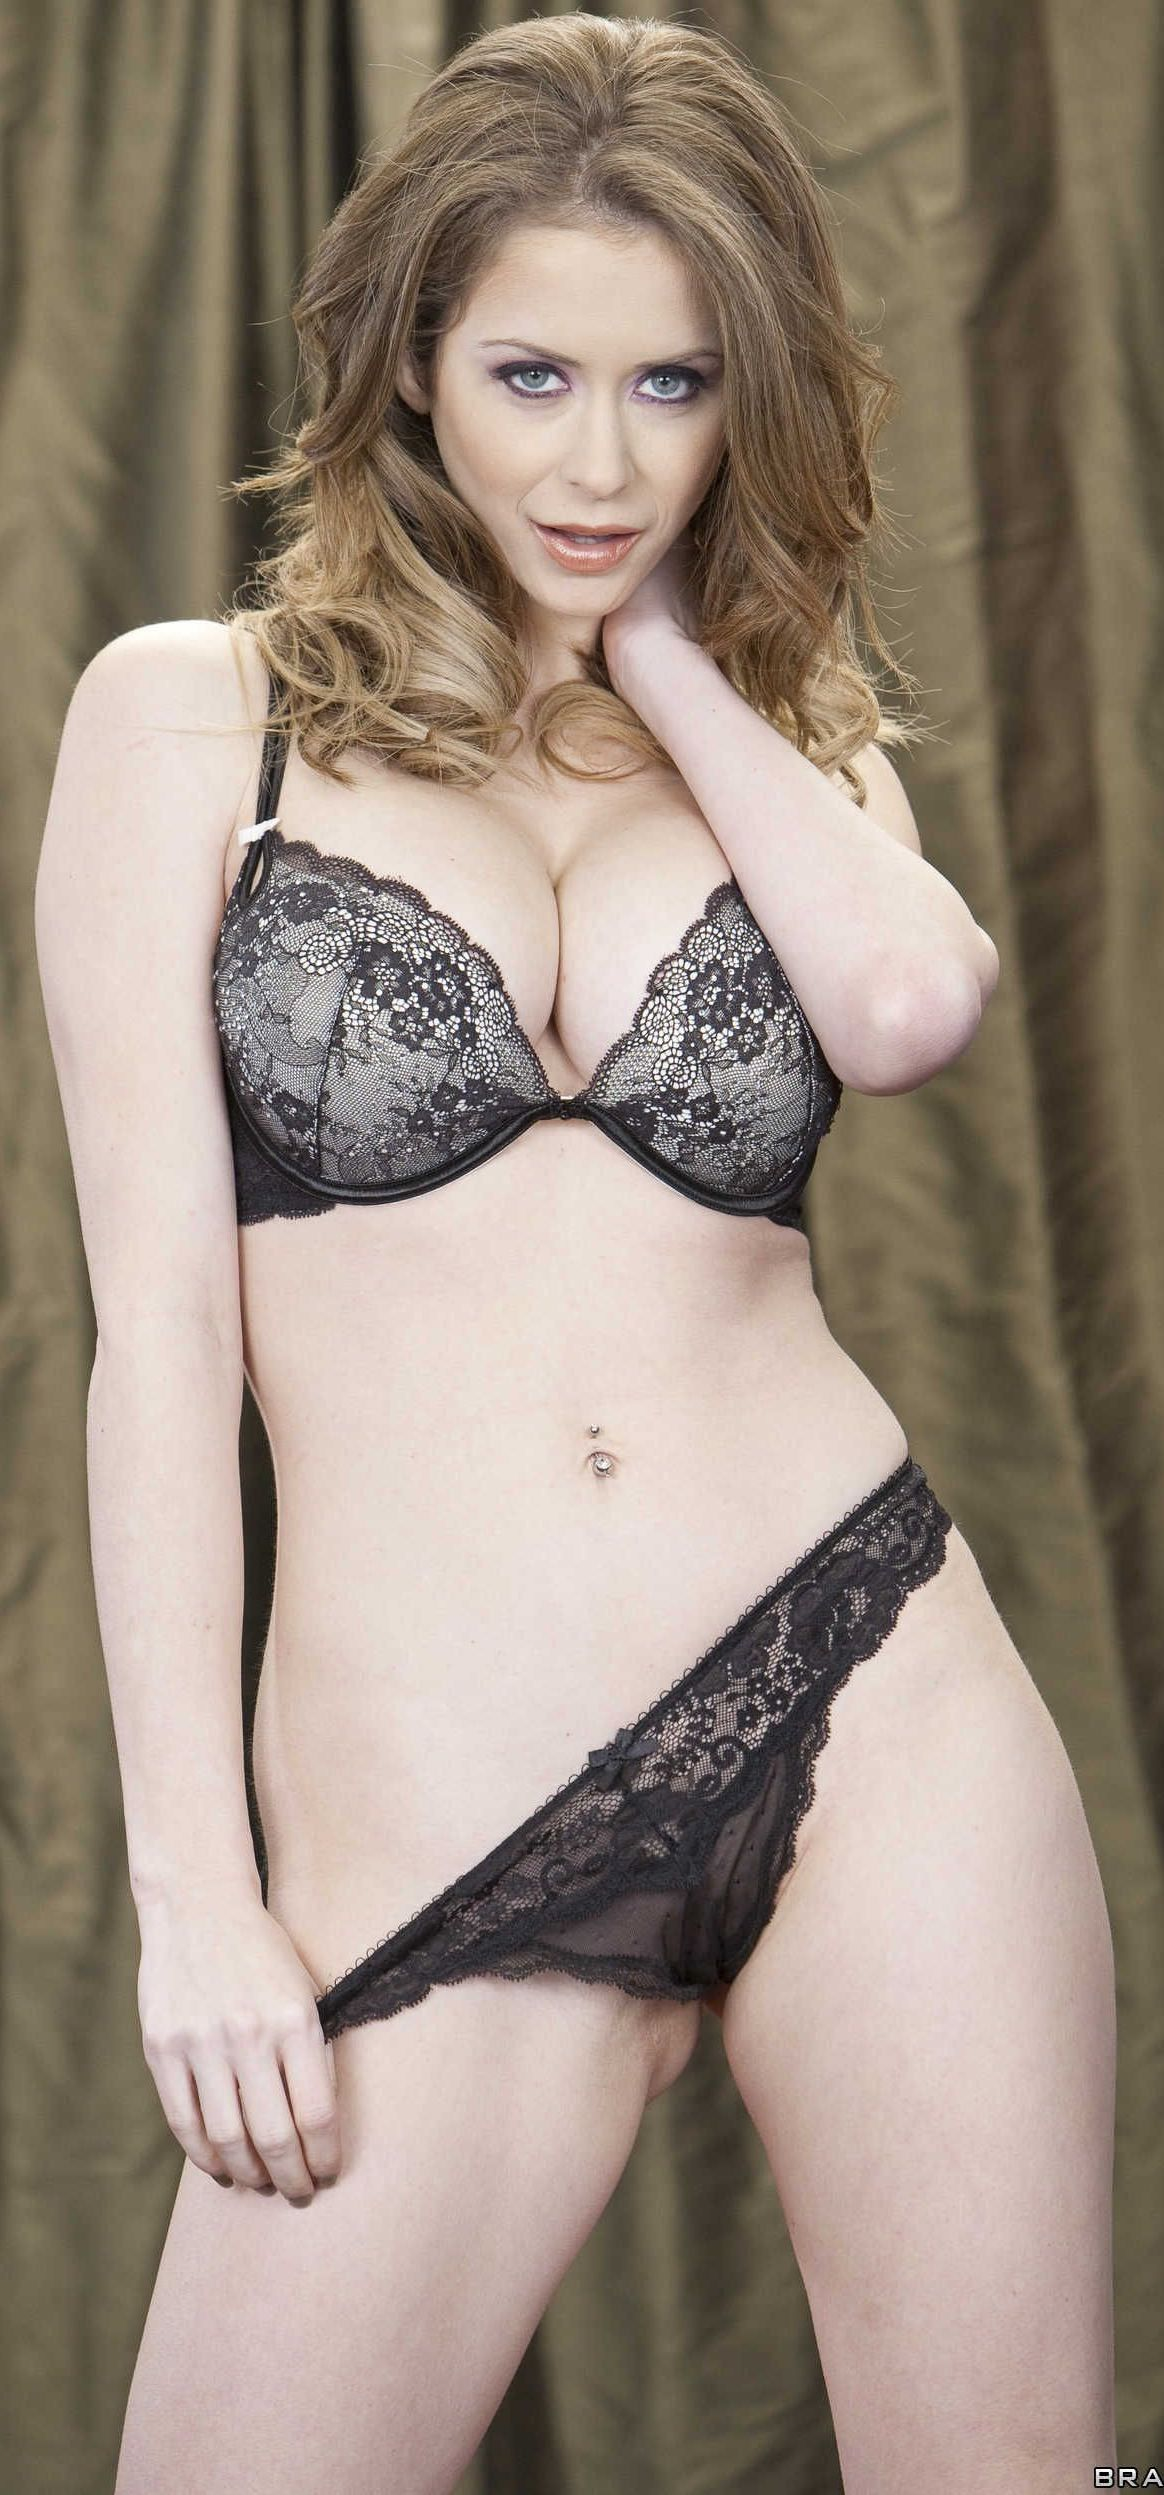 Stoya Black Lingerie Simple emily addison #sexy #pornstar in black #lingerie. | pornstars